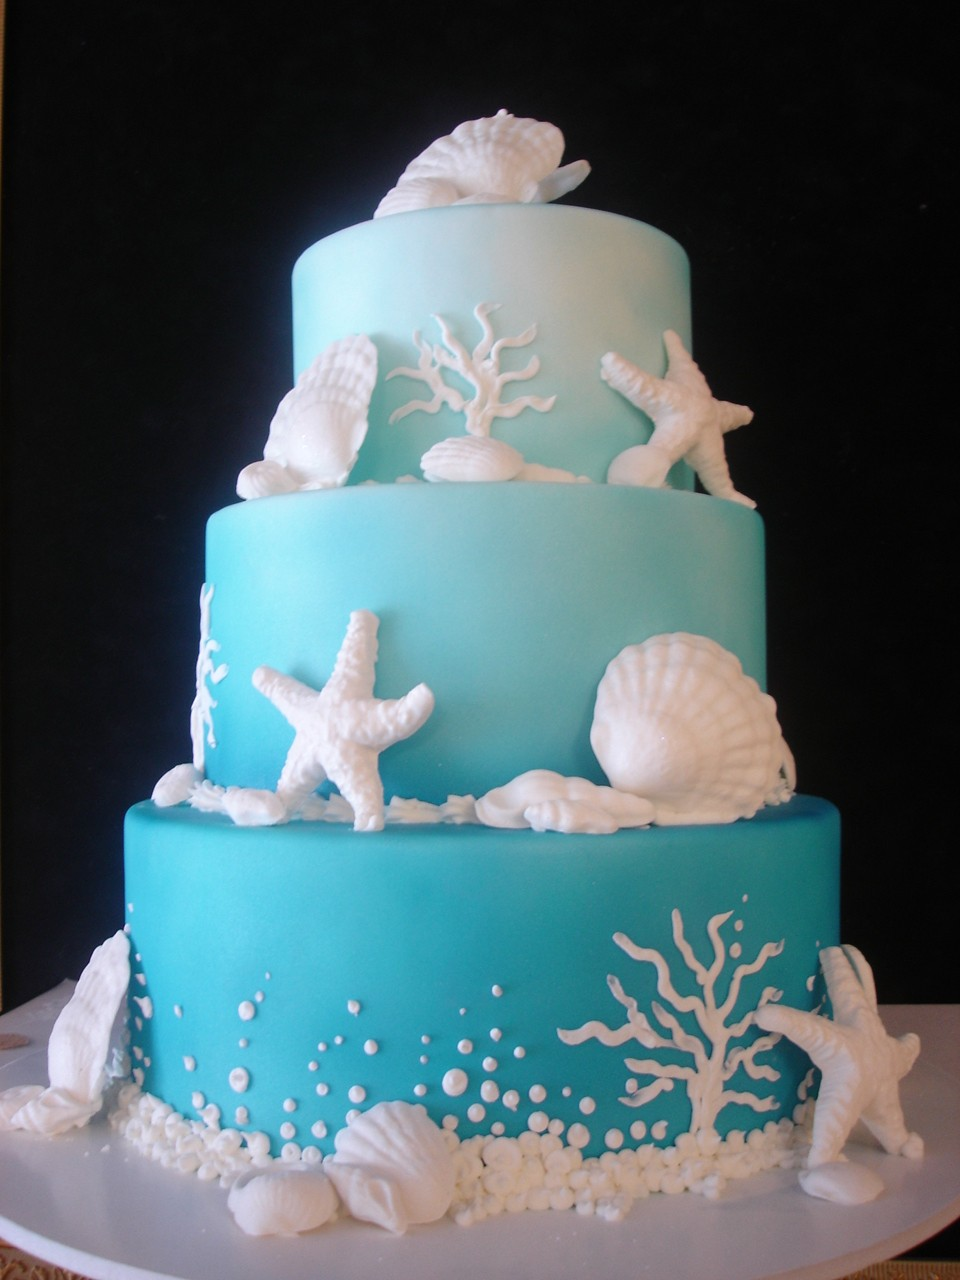 13 Cakes Blue Beach Photo Beach Theme Wedding Cakes Under The Sea